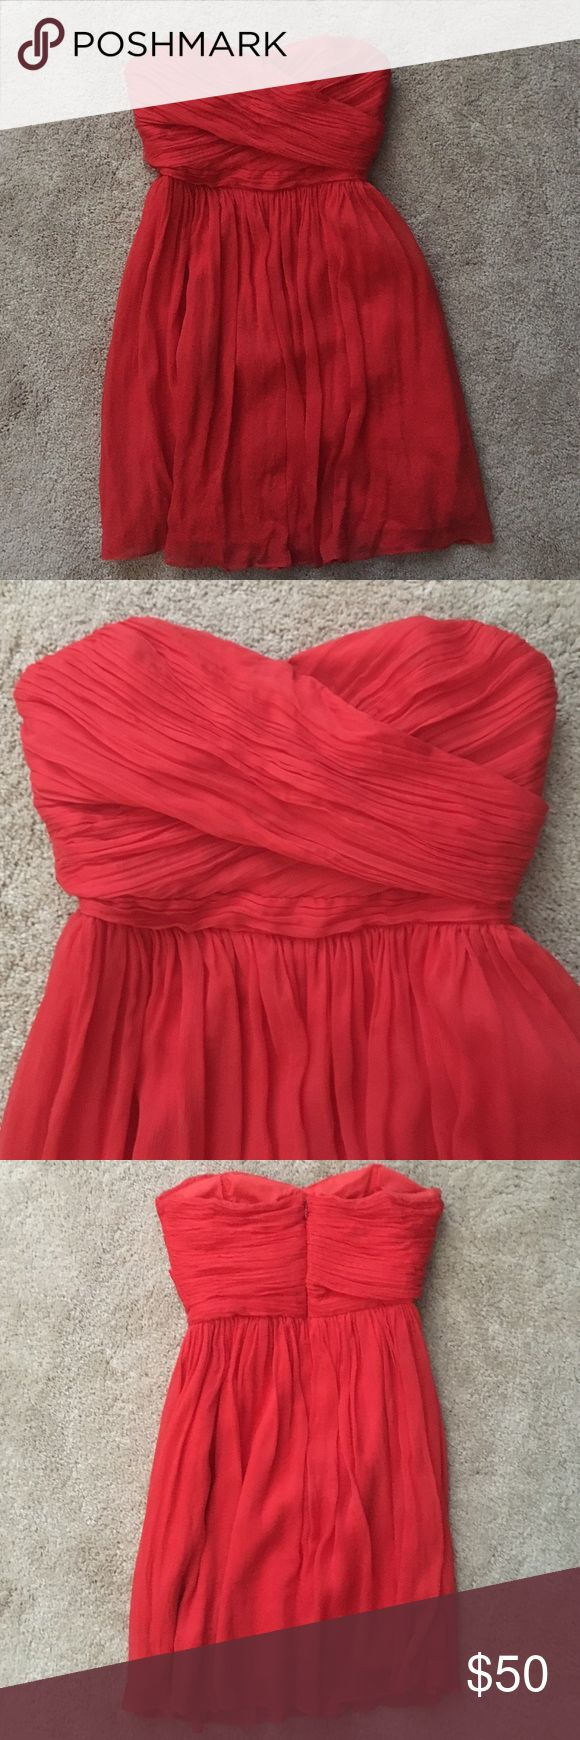 J. Crew Bridesmaids dress in poppy Short chiffon poppy bridesmaids dress with hidden zipper J. Crew Dresses Wedding